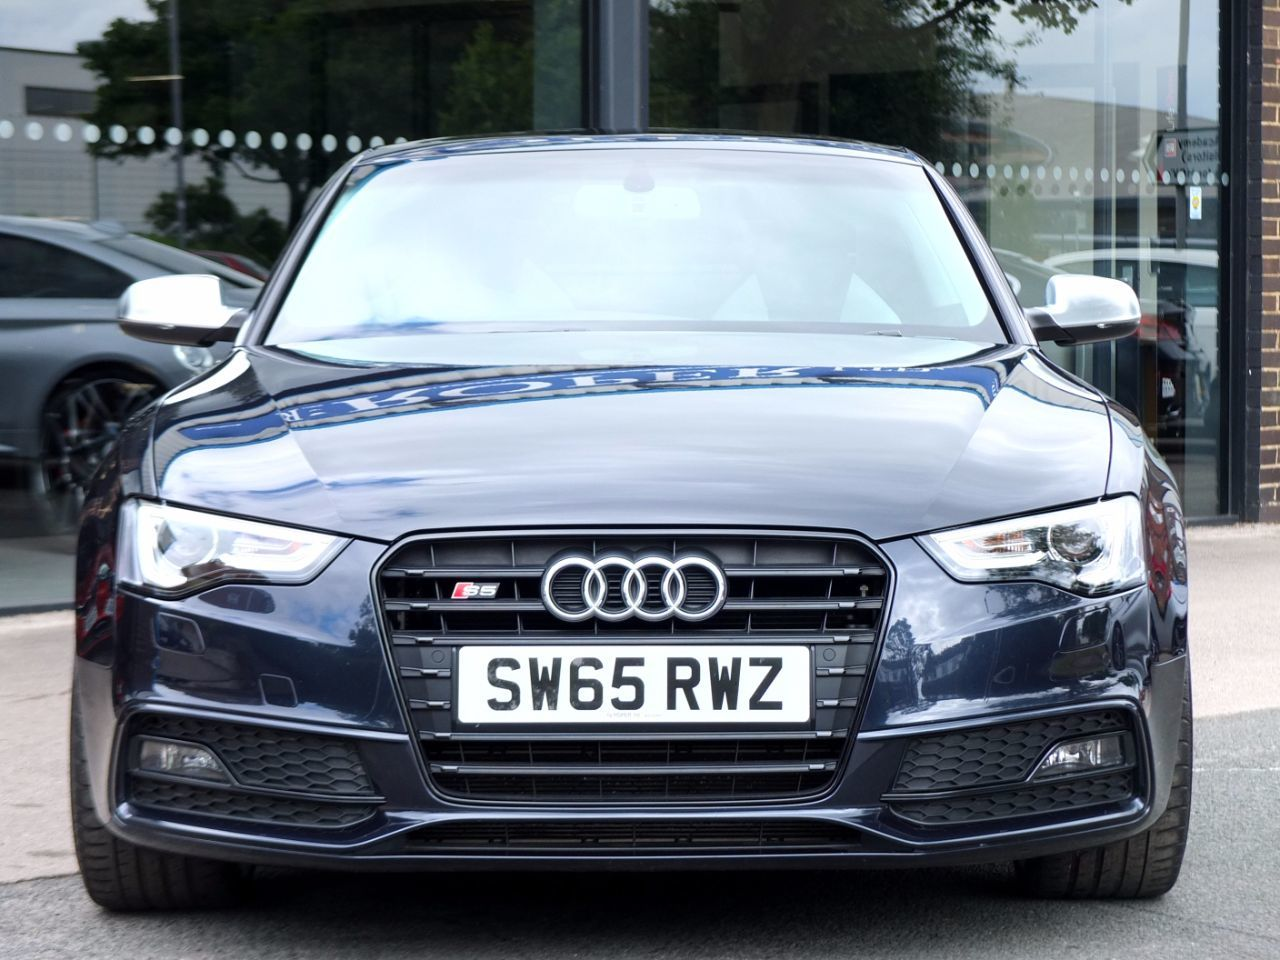 Audi A5 S5 3.0T FSI quattro Black Edition S tronic 333ps Coupe Petrol Moonlight Blue Metallic